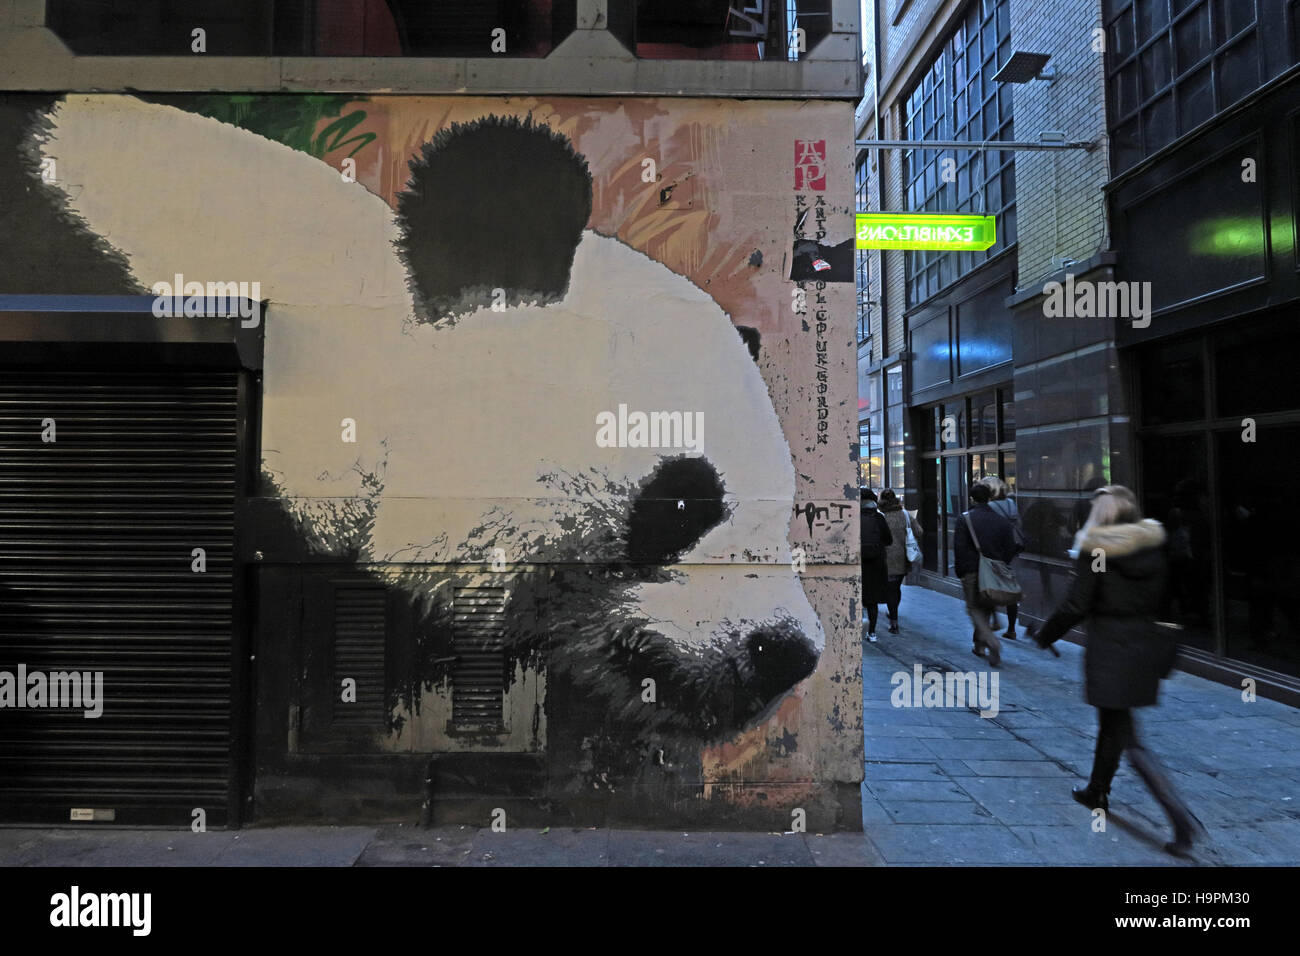 Panda graffiti,Mitchell Lane,Glasgow,Scotland,UK - Stock Image